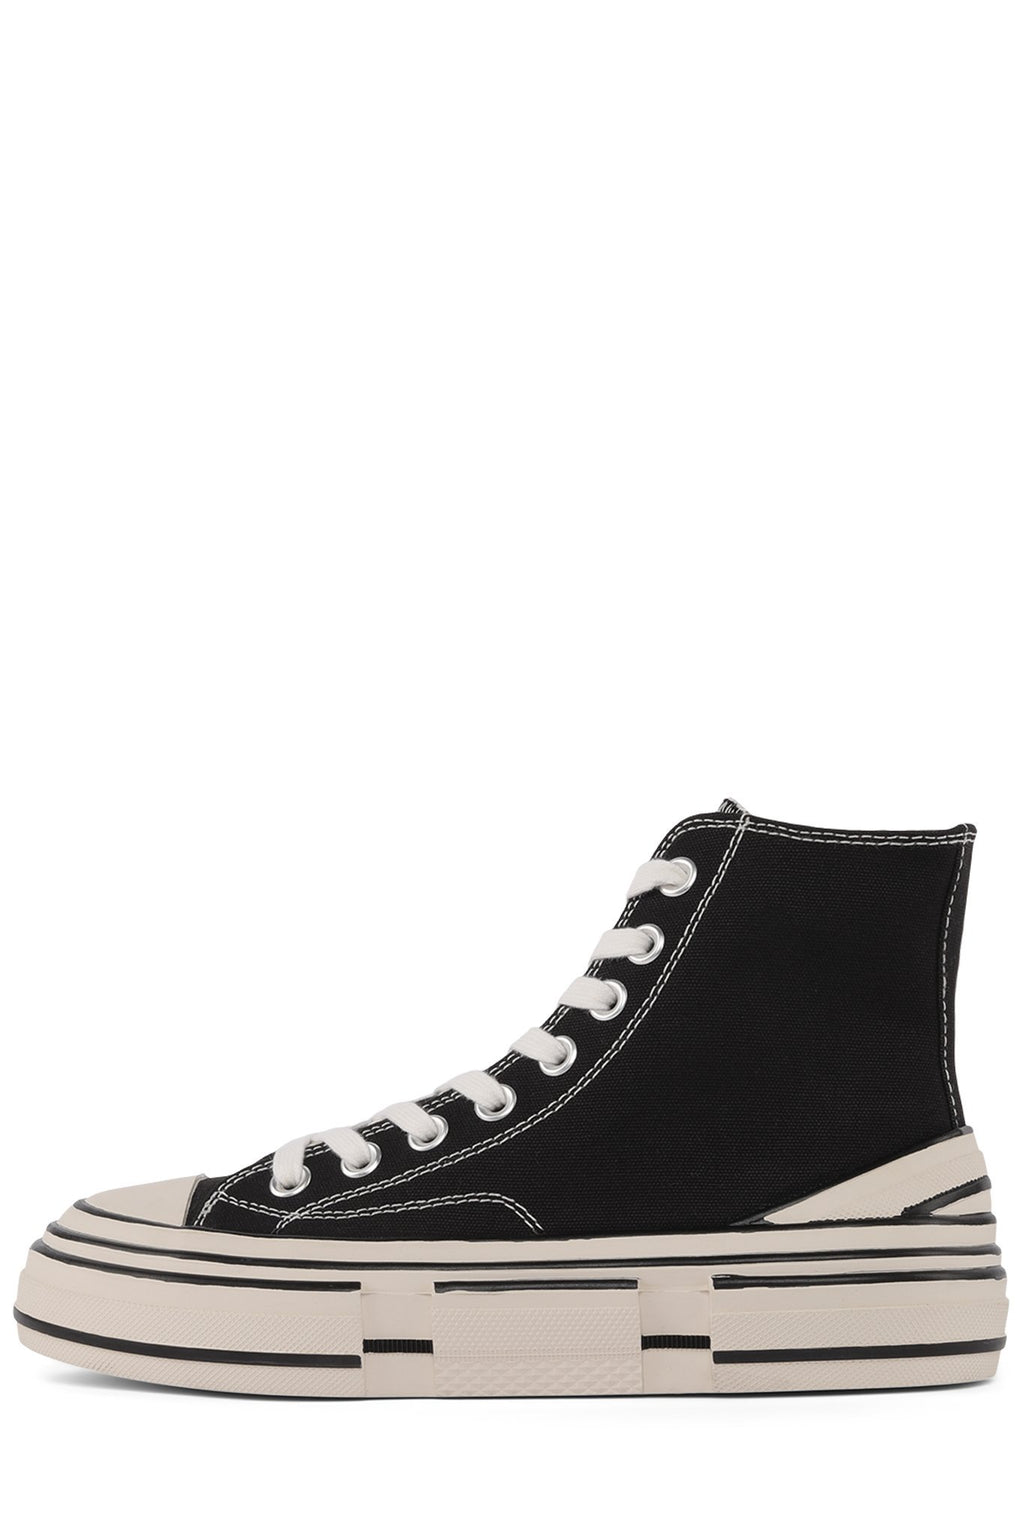 ENDORPHN-H Sneaker Jeffrey Campbell Black Canvas 6